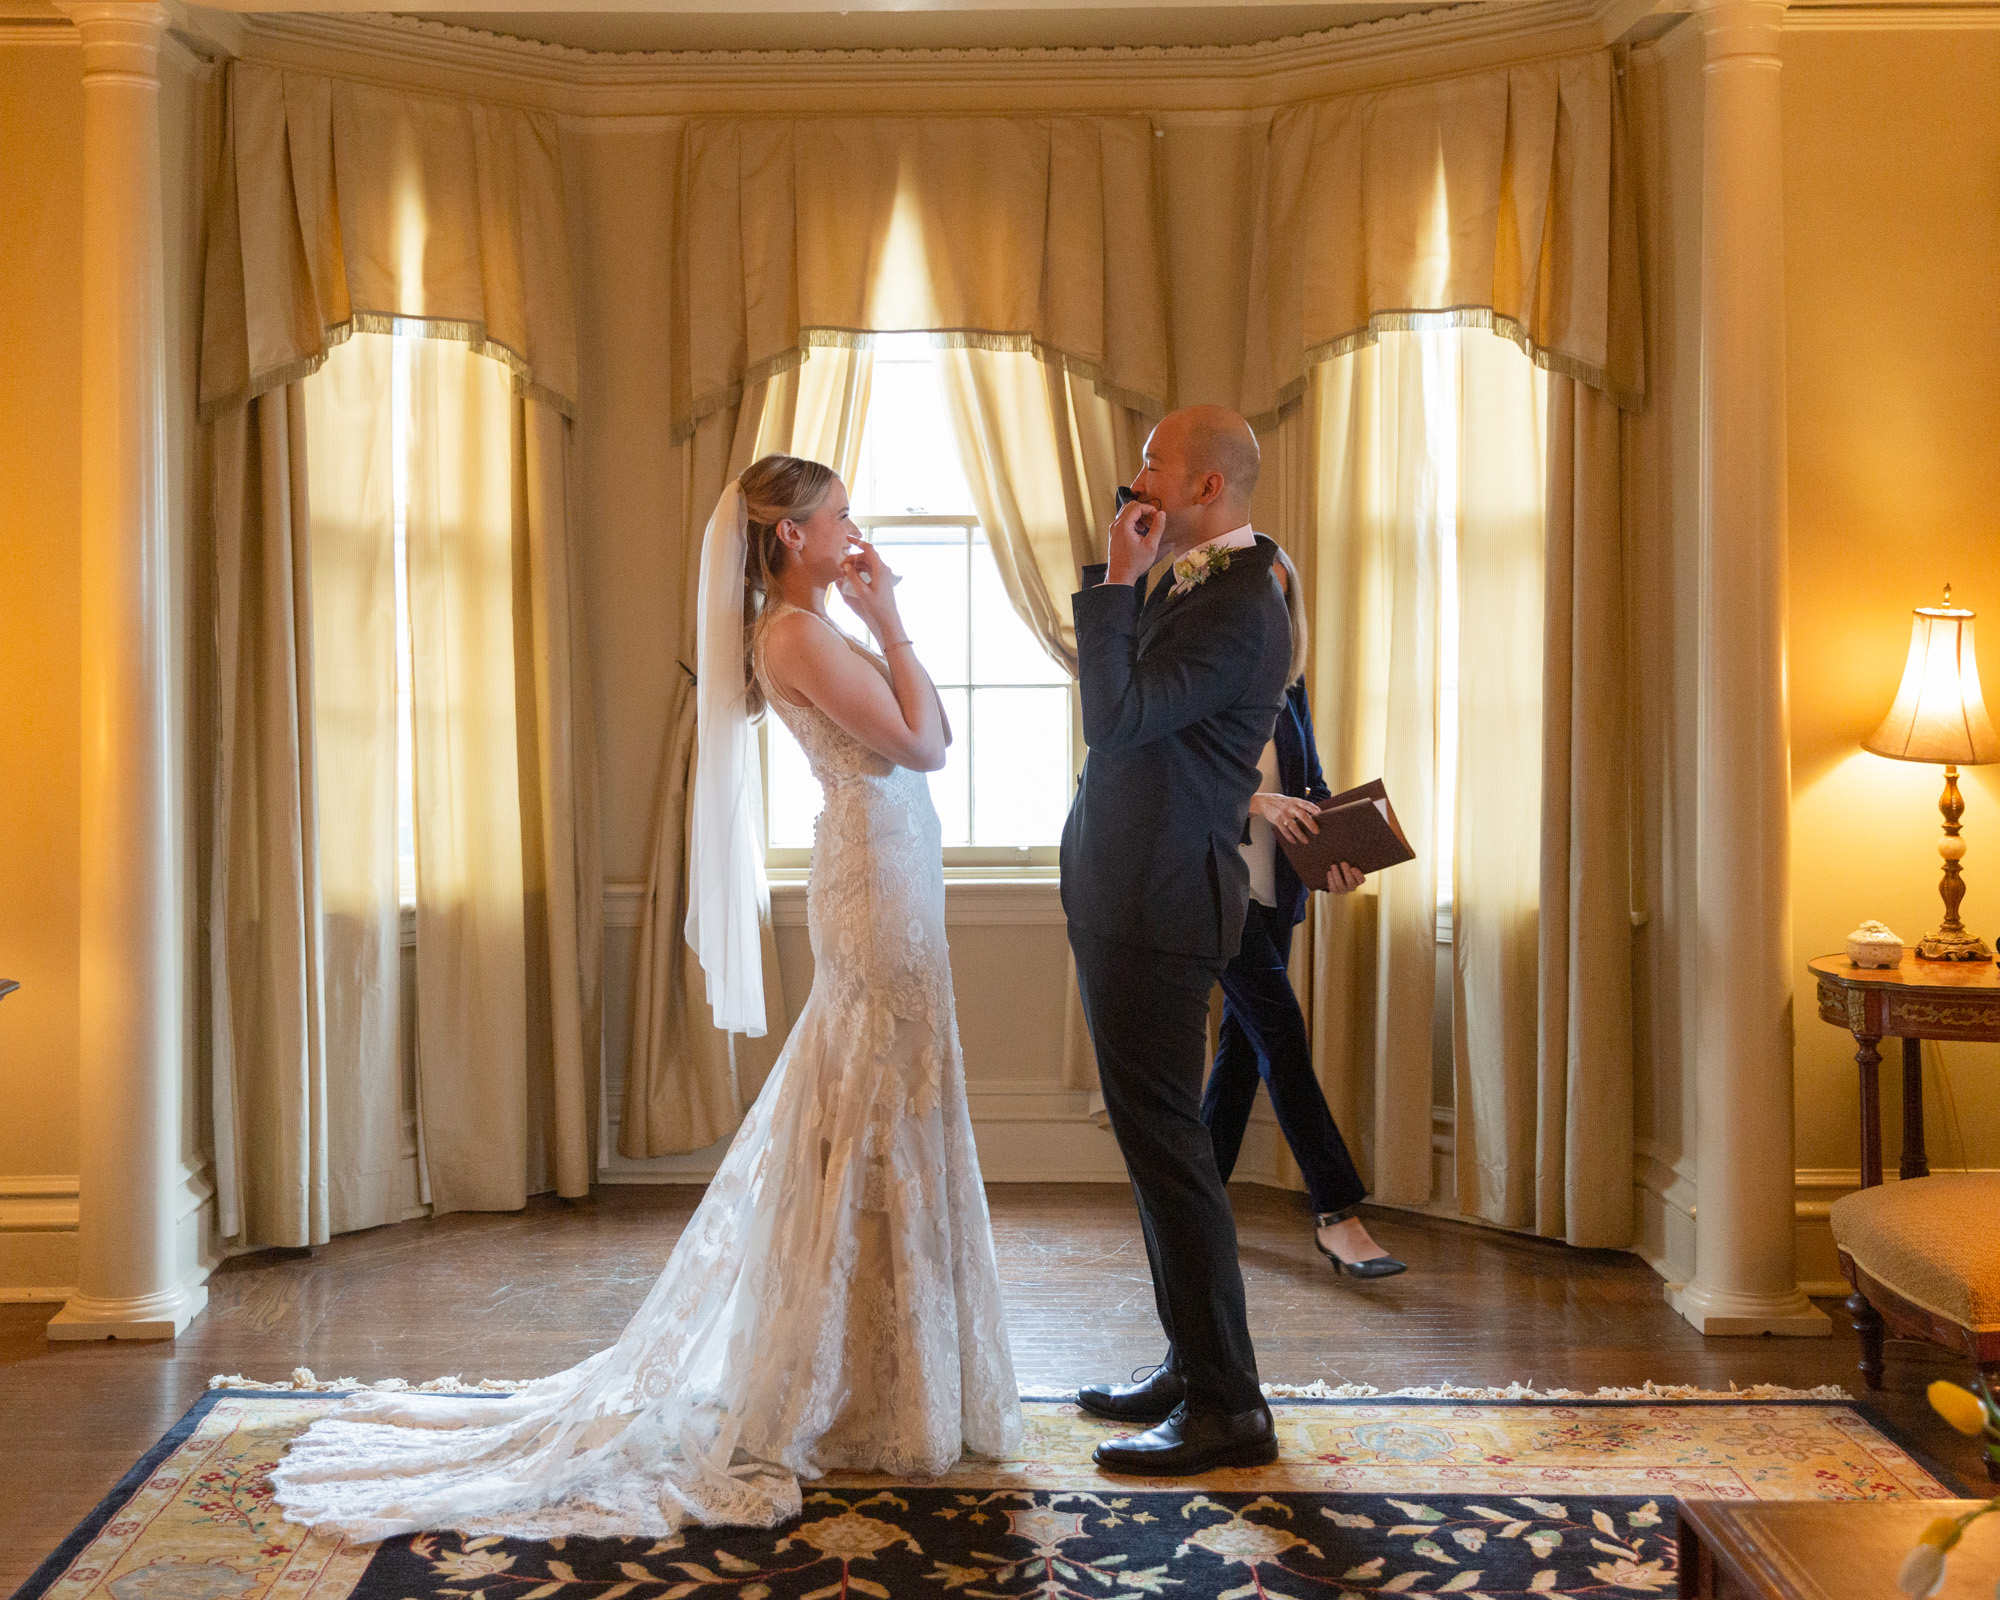 Elegant bride and groom remove their masks to kiss after saying their wedding vows in the Parlor of the Sayre Mansion in Bethlehem, PA by Laura Billingham Photography